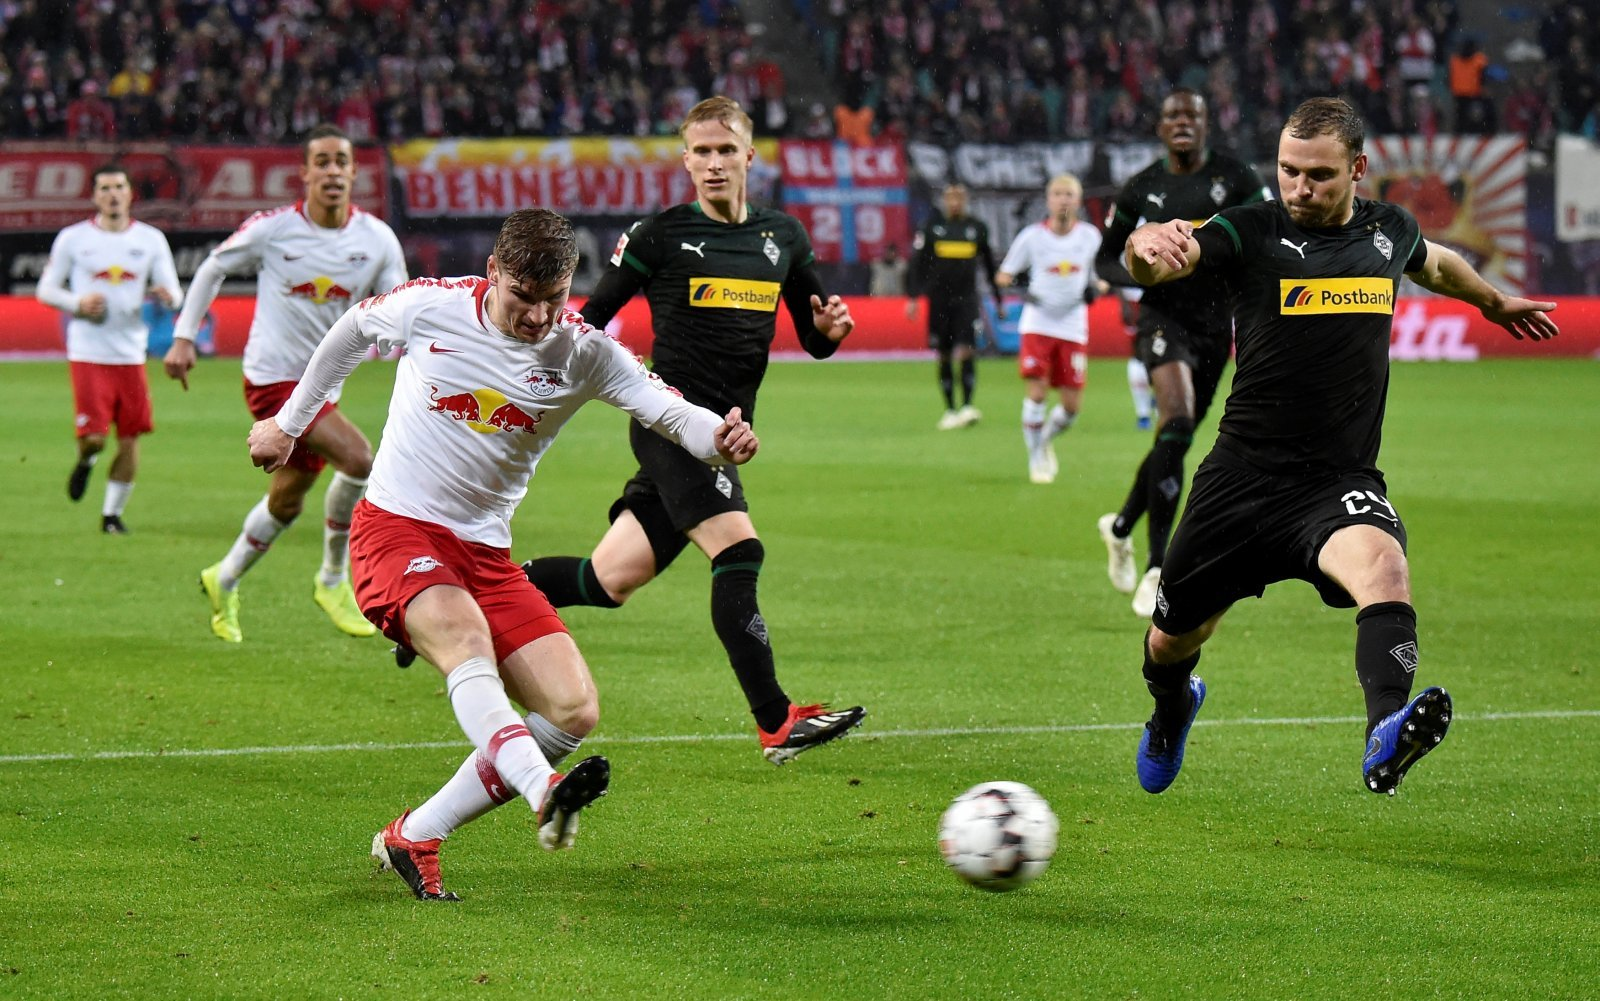 Opinion: Borussia Dortmund could be Jurgen Klopp's nemesis in race for Timo Werner